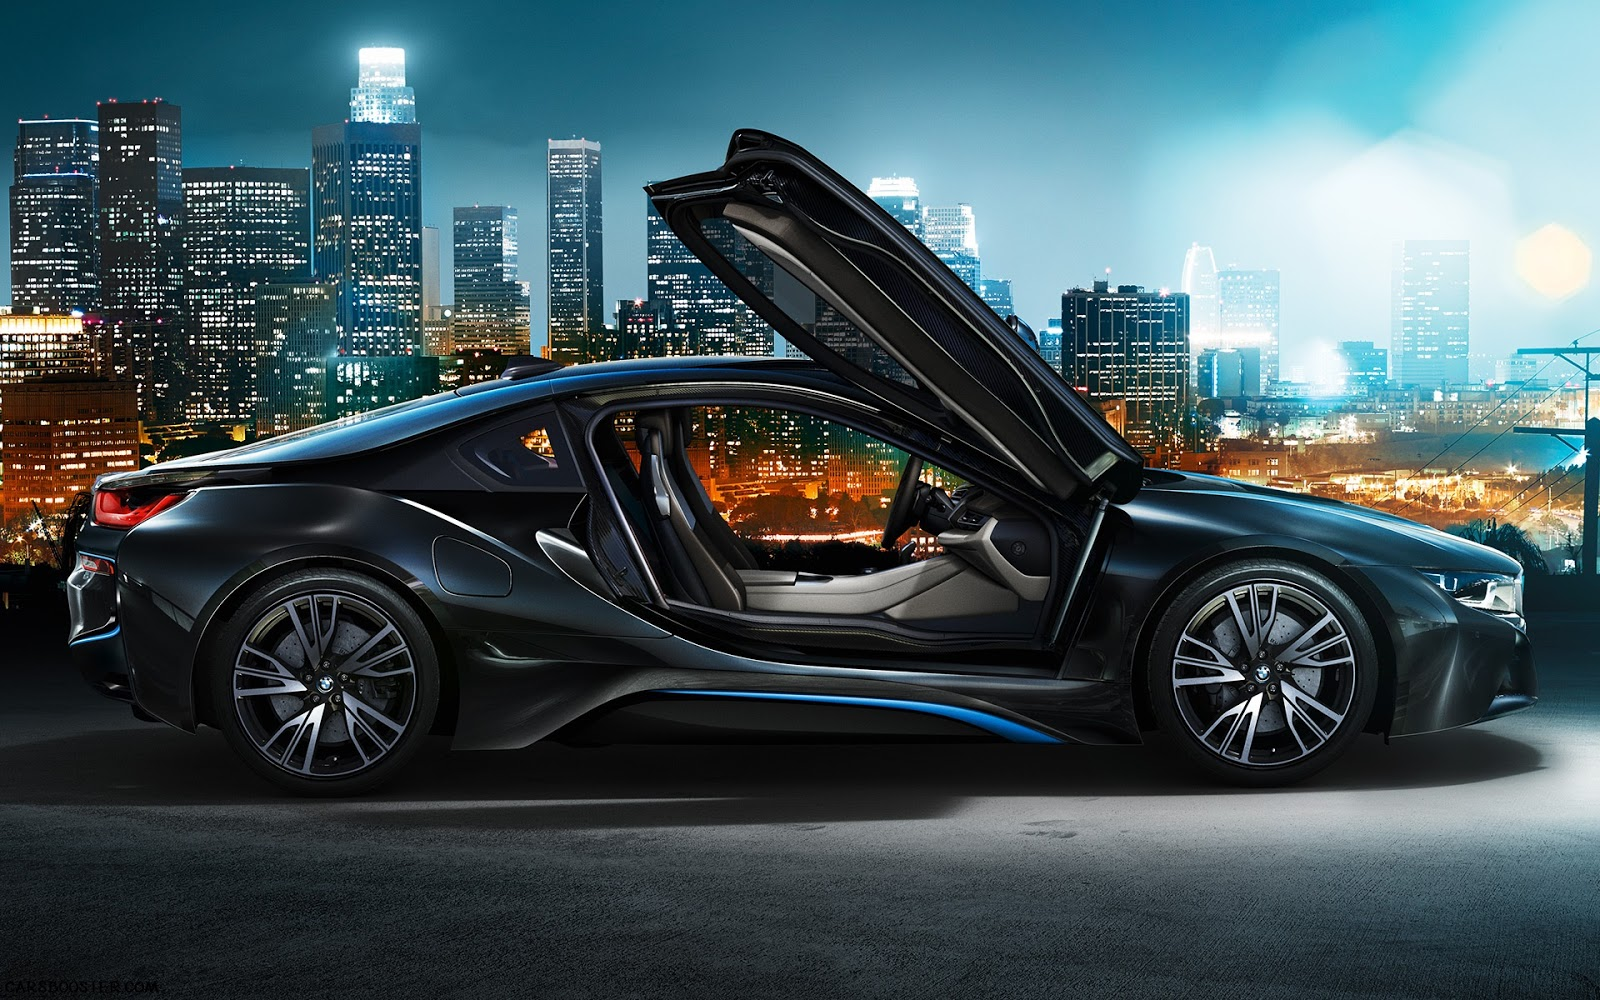 Bmw I8 Hd Wallpaper Cars Booster